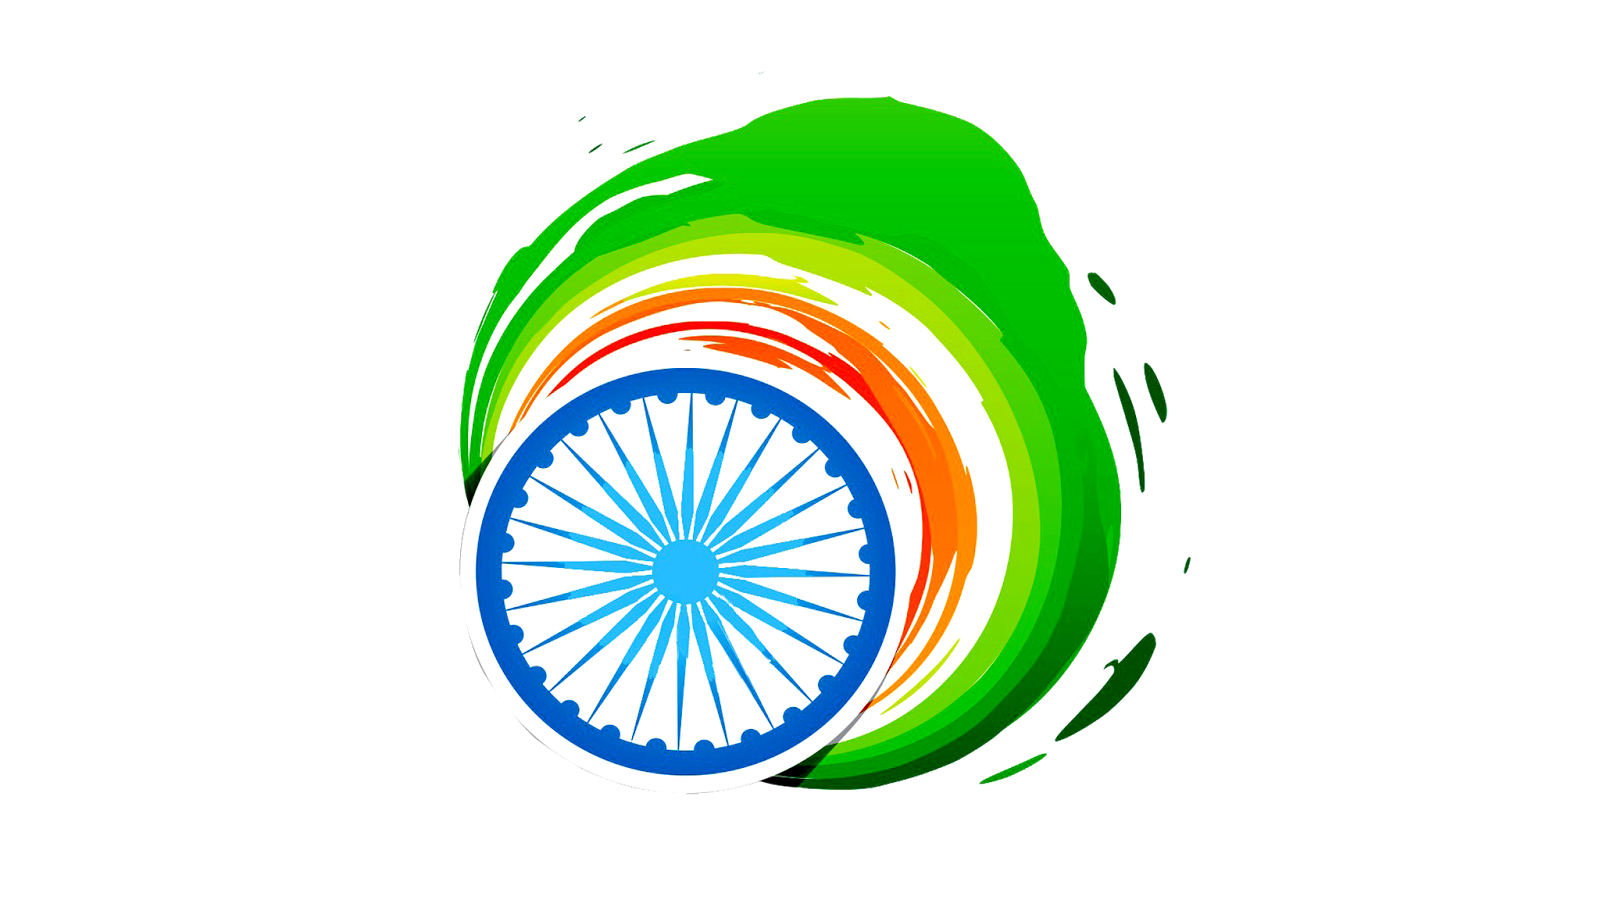 indian flag pngforall indian round flag transparent png wallpapers #38523